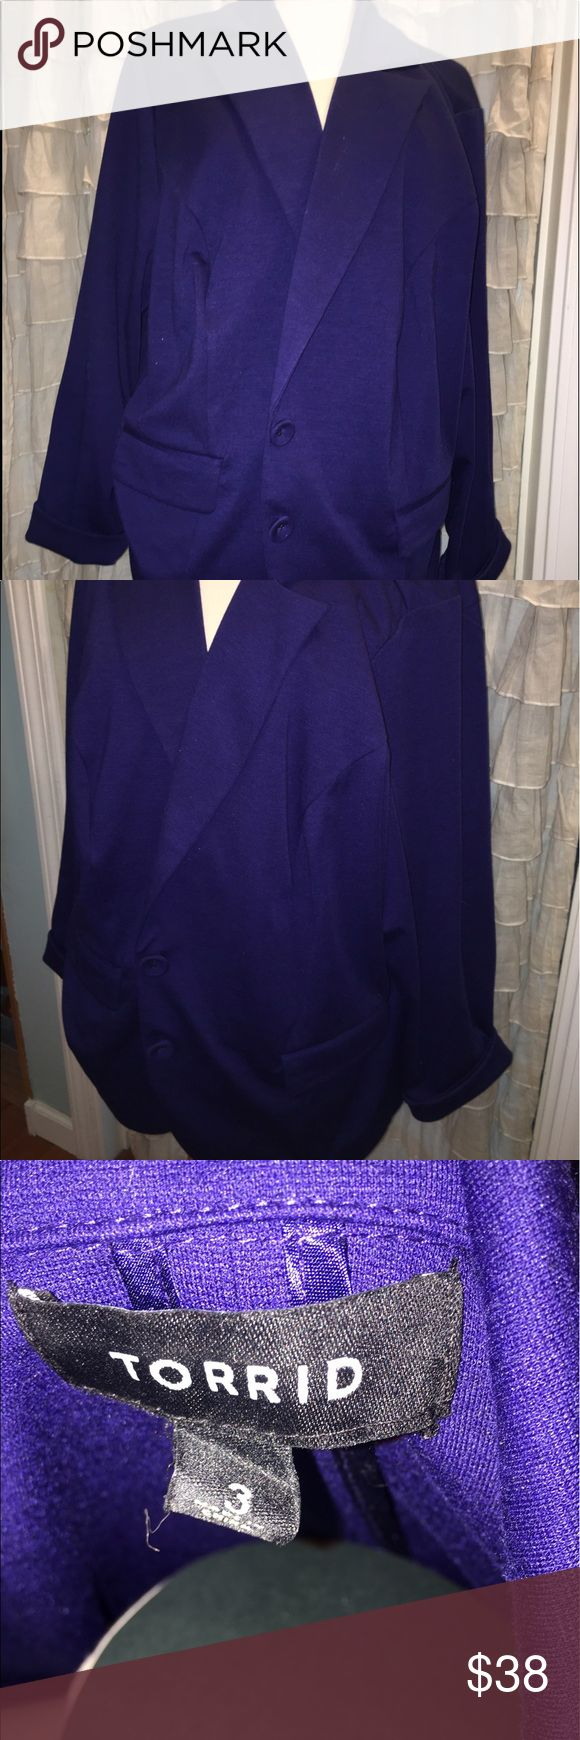 TORRID Royal Blue Blazer Bright royal blue knit Blazer with double buttons. Long sleeves that are easy to roll up to complete the office to date night look! EUC!! torrid Jackets & Coats Blazers